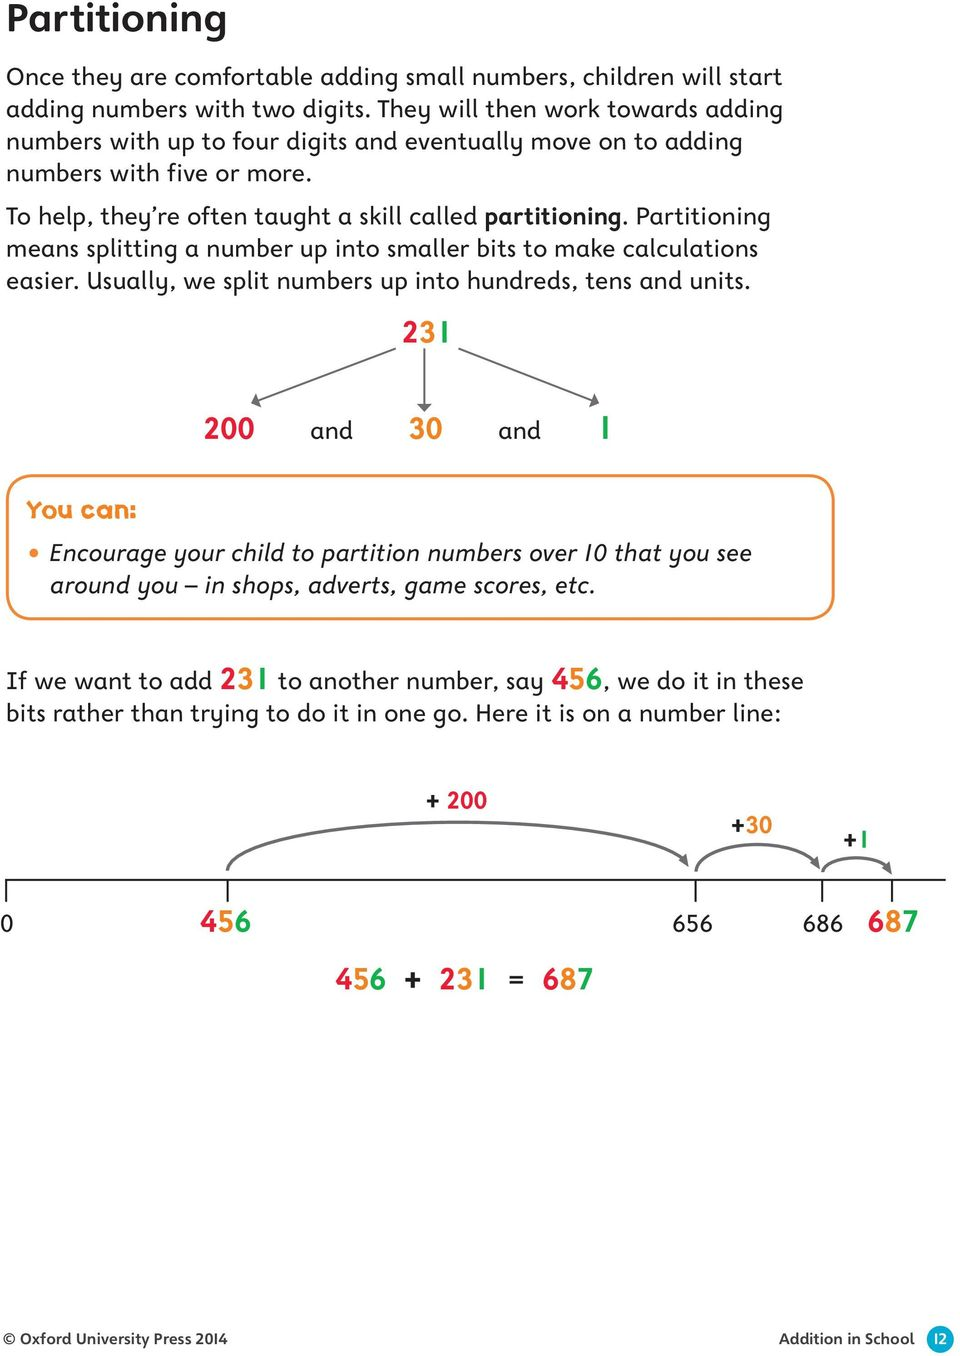 Partitioning means splitting a number up into smaller bits to make calculations easier. Usually, we split numbers up into hundreds, tens and units.